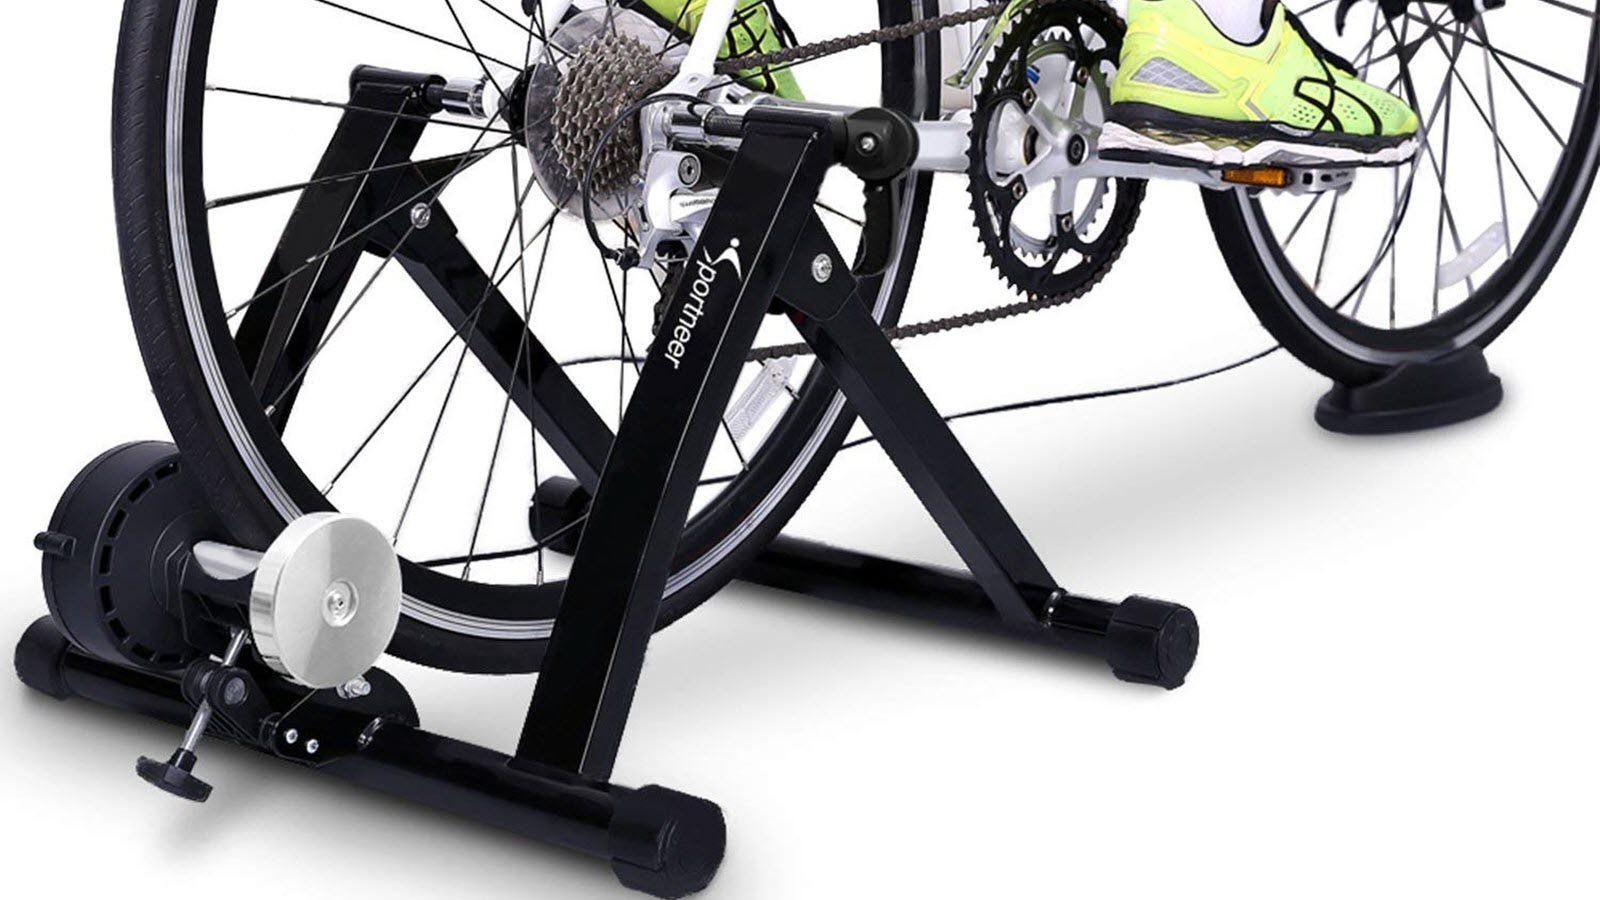 The Sportneer Bike Trainer Stand with a bike attached to it and a person's feet on the pedals.